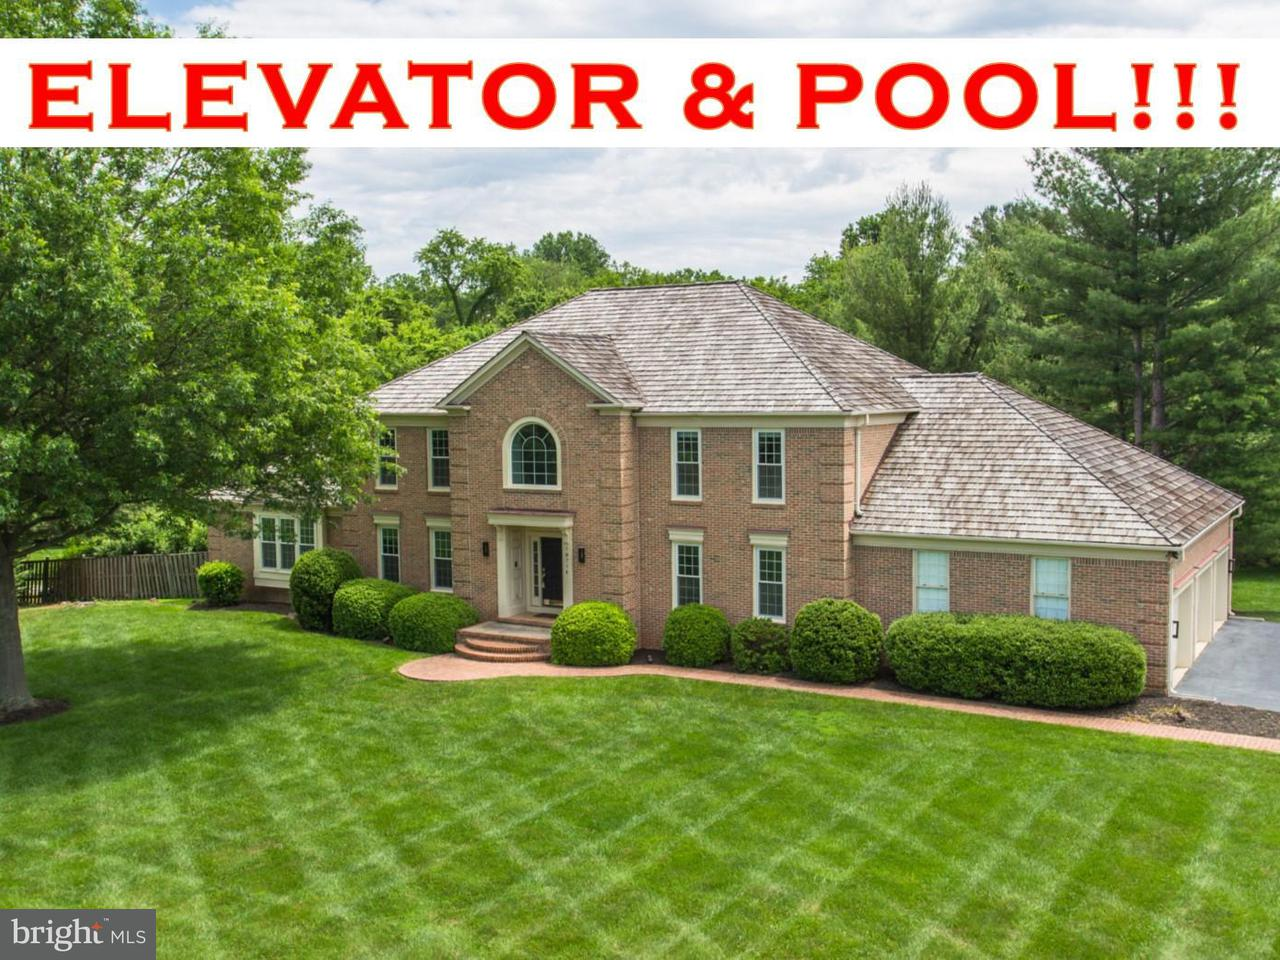 Single Family Home for Sale at 10716 Falls Pointe Drive 10716 Falls Pointe Drive Great Falls, Virginia 22066 United States